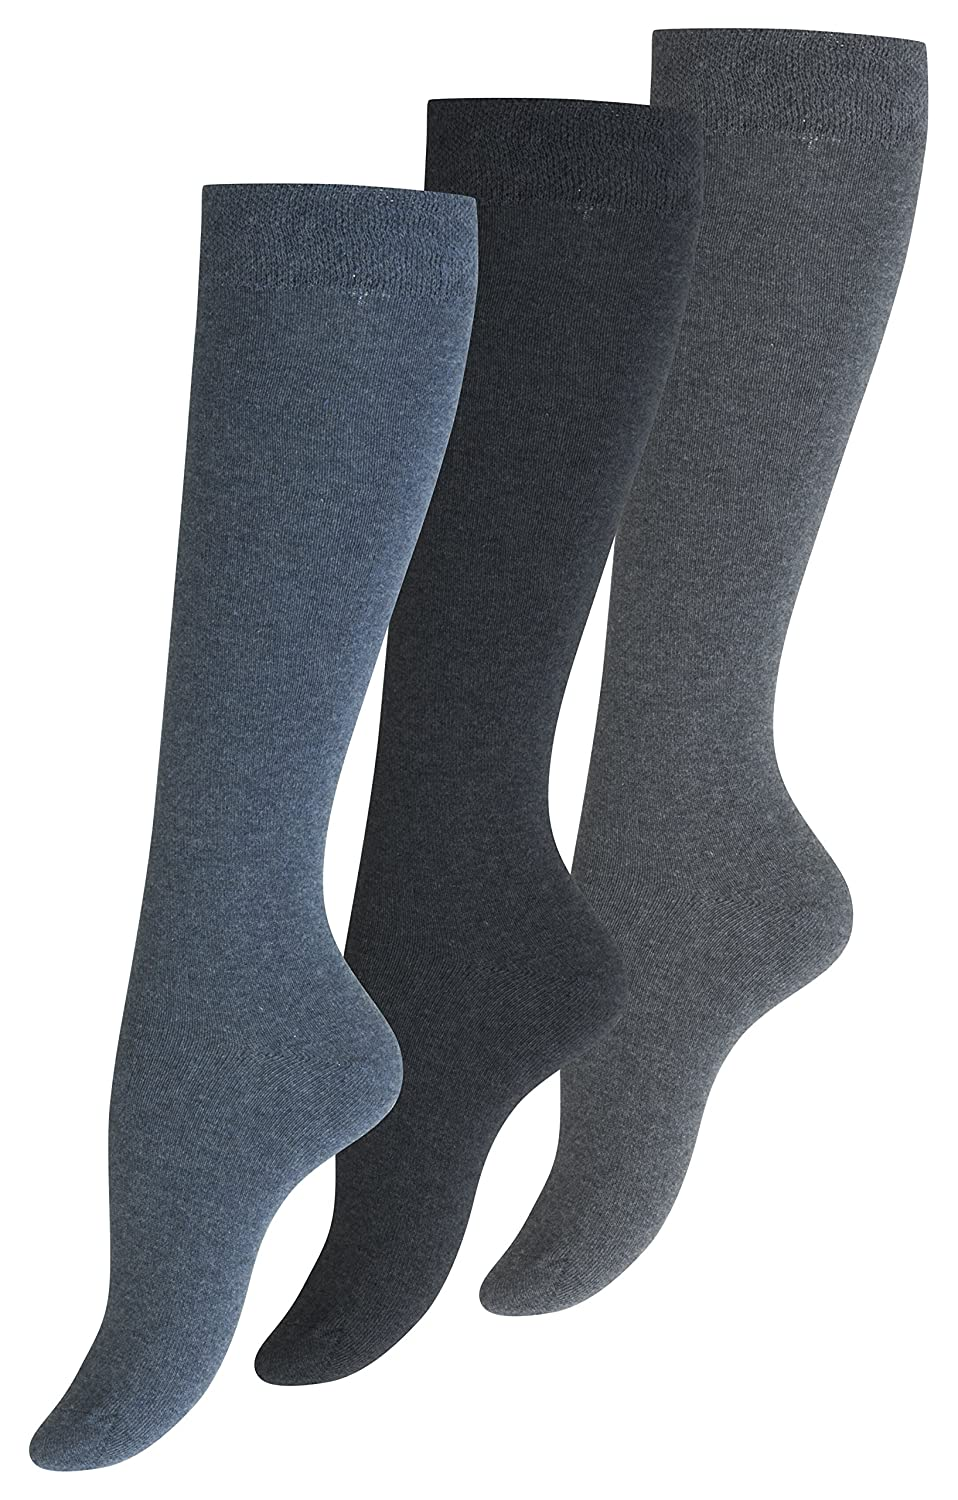 3 Pairs of Womens-Ladies Knee High Socks, Soft Loop Cuff, non elastic, Seamless toes. by VCA®